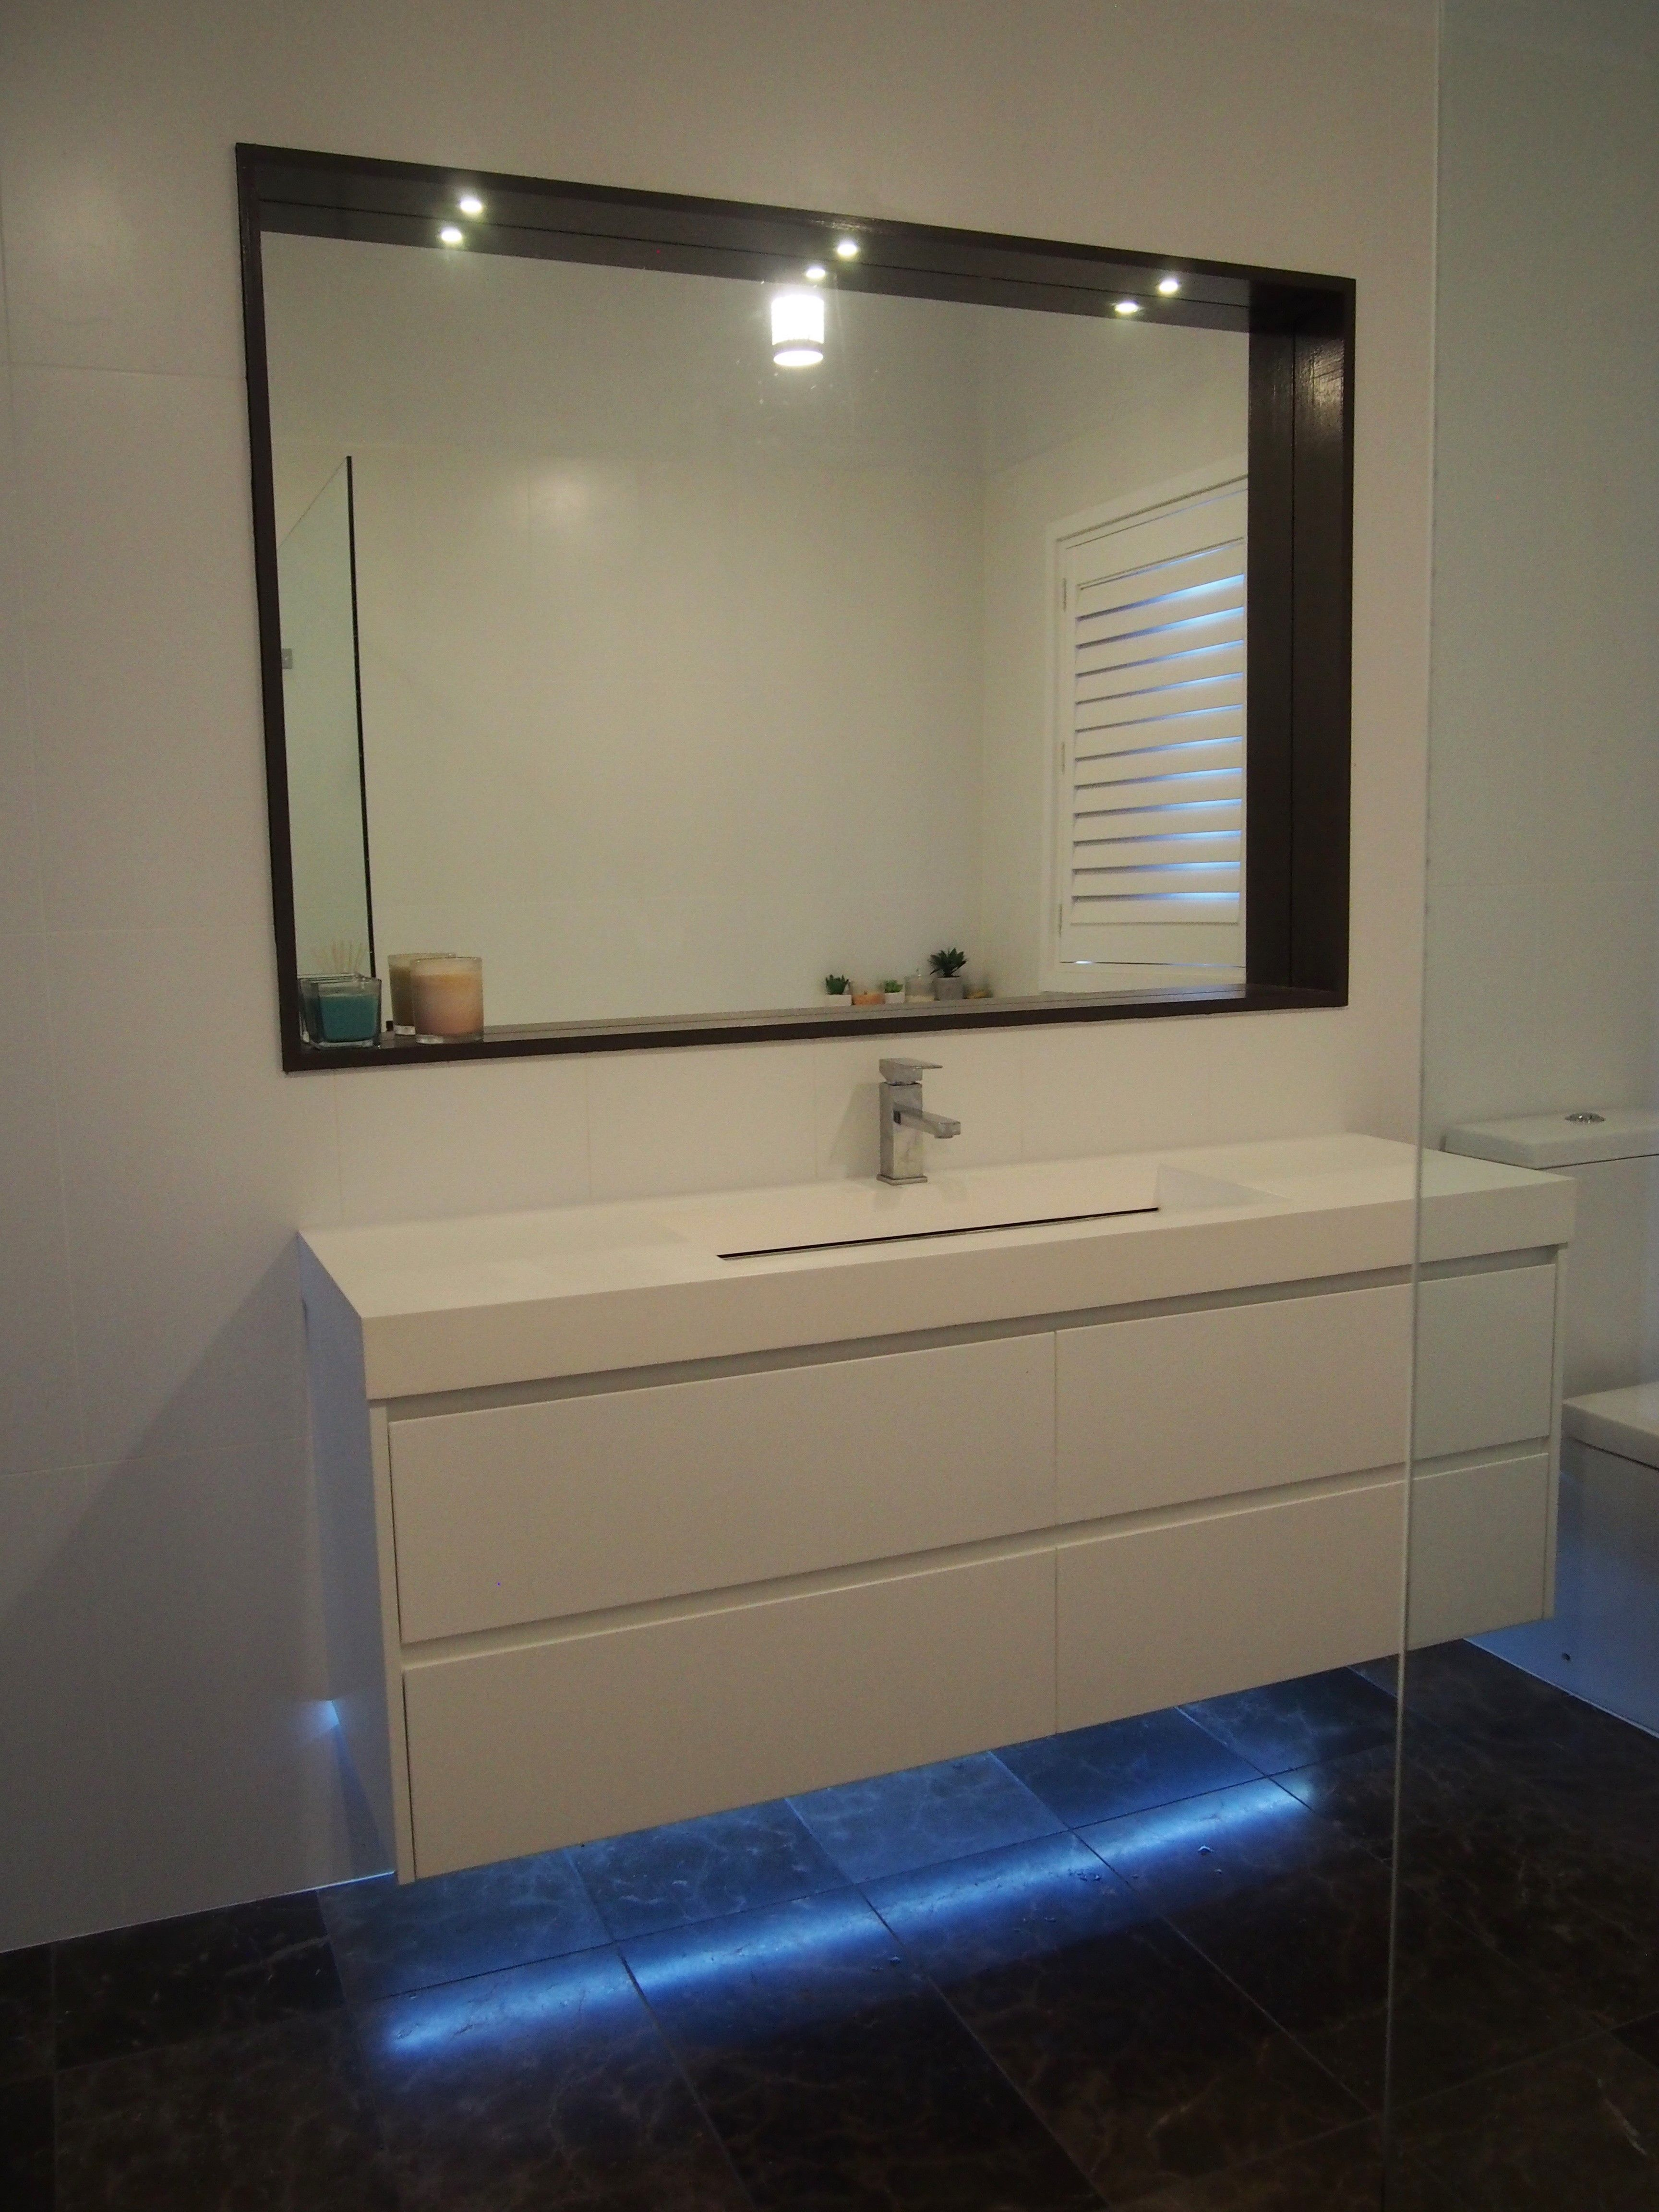 Bathroom Mirrors And Lighting Bathroom Lighting Led Recessed Mirror Lights And Under